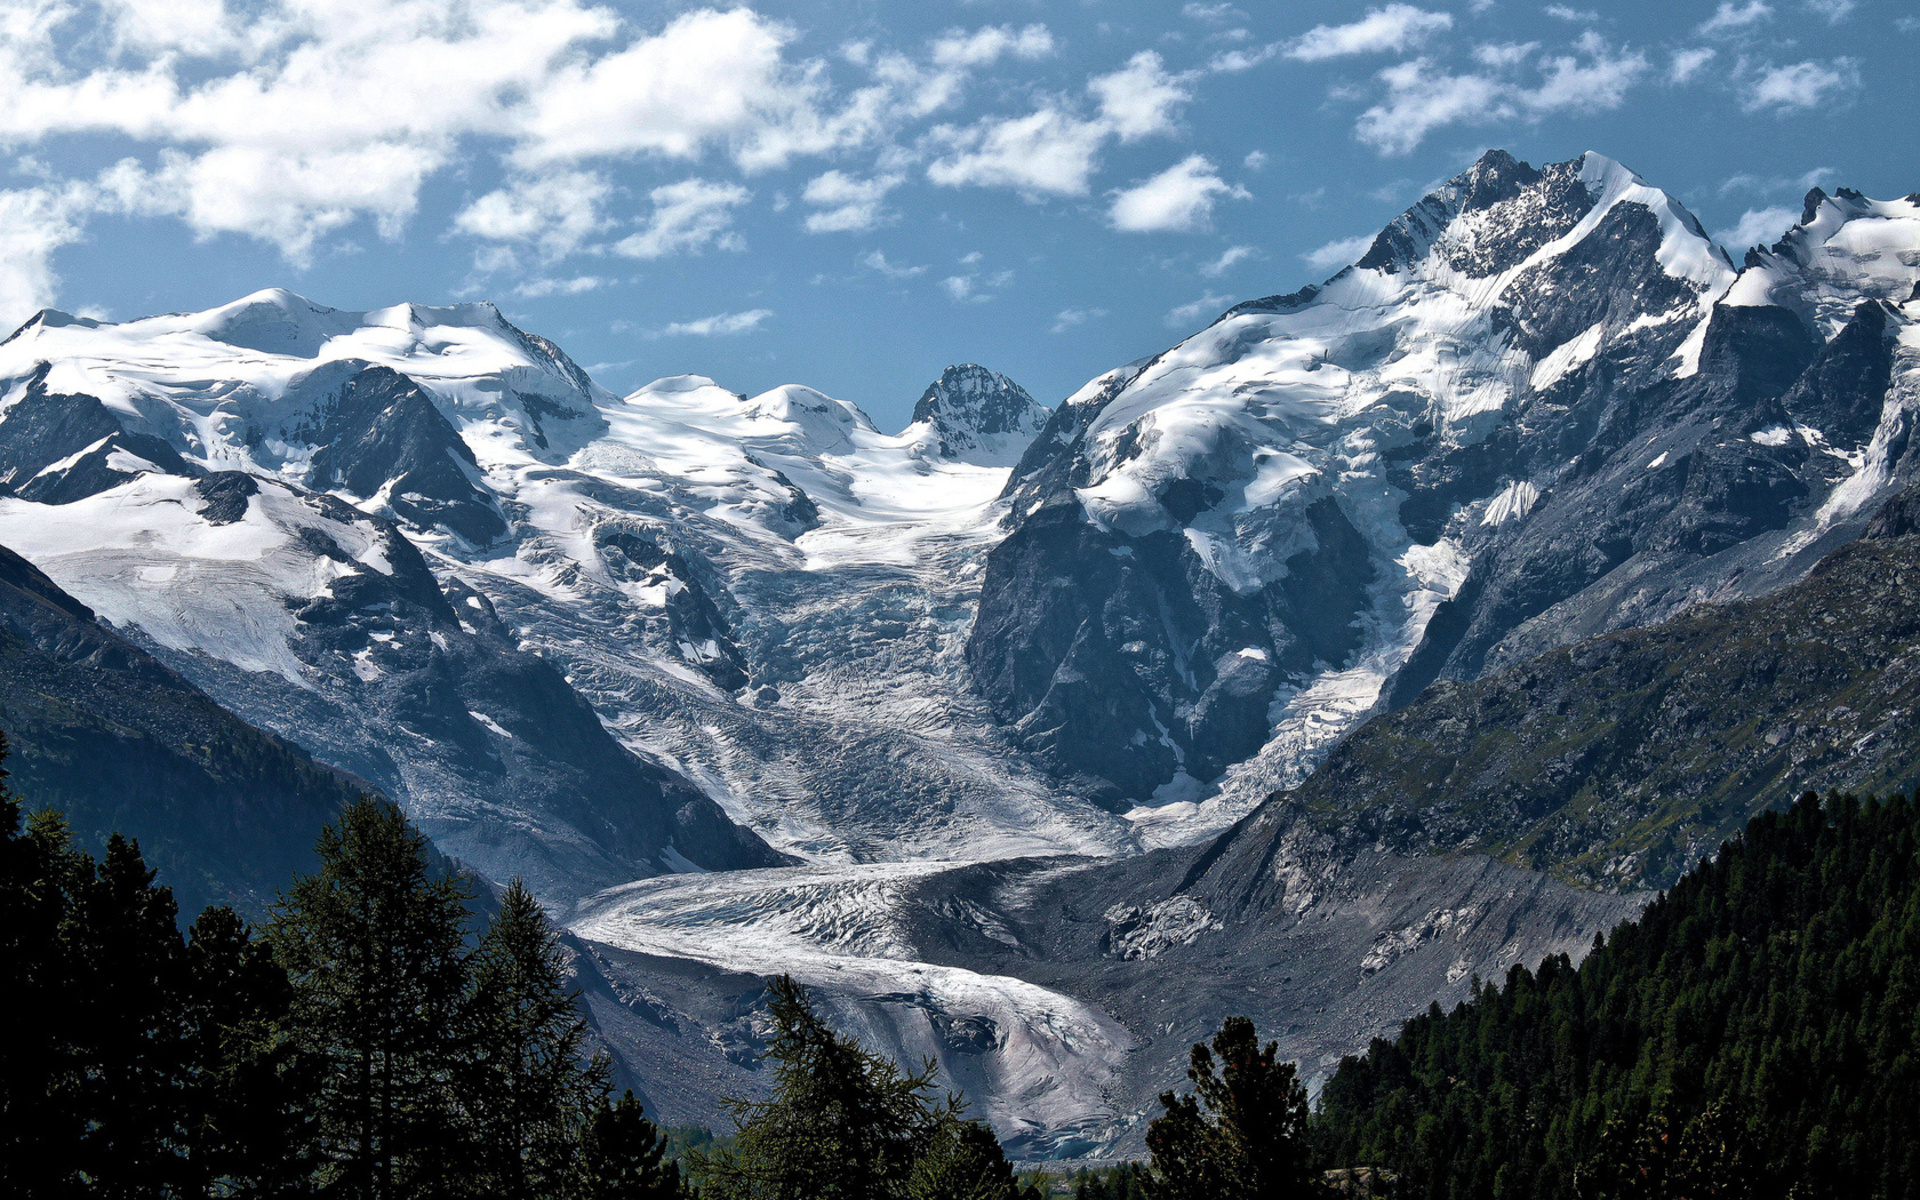 Cool Wallpaper Mountain Computer - Nature-Mountains-Glacier-Ice-Snow-Wallpaper-1920x1200  Pic_87224.jpg